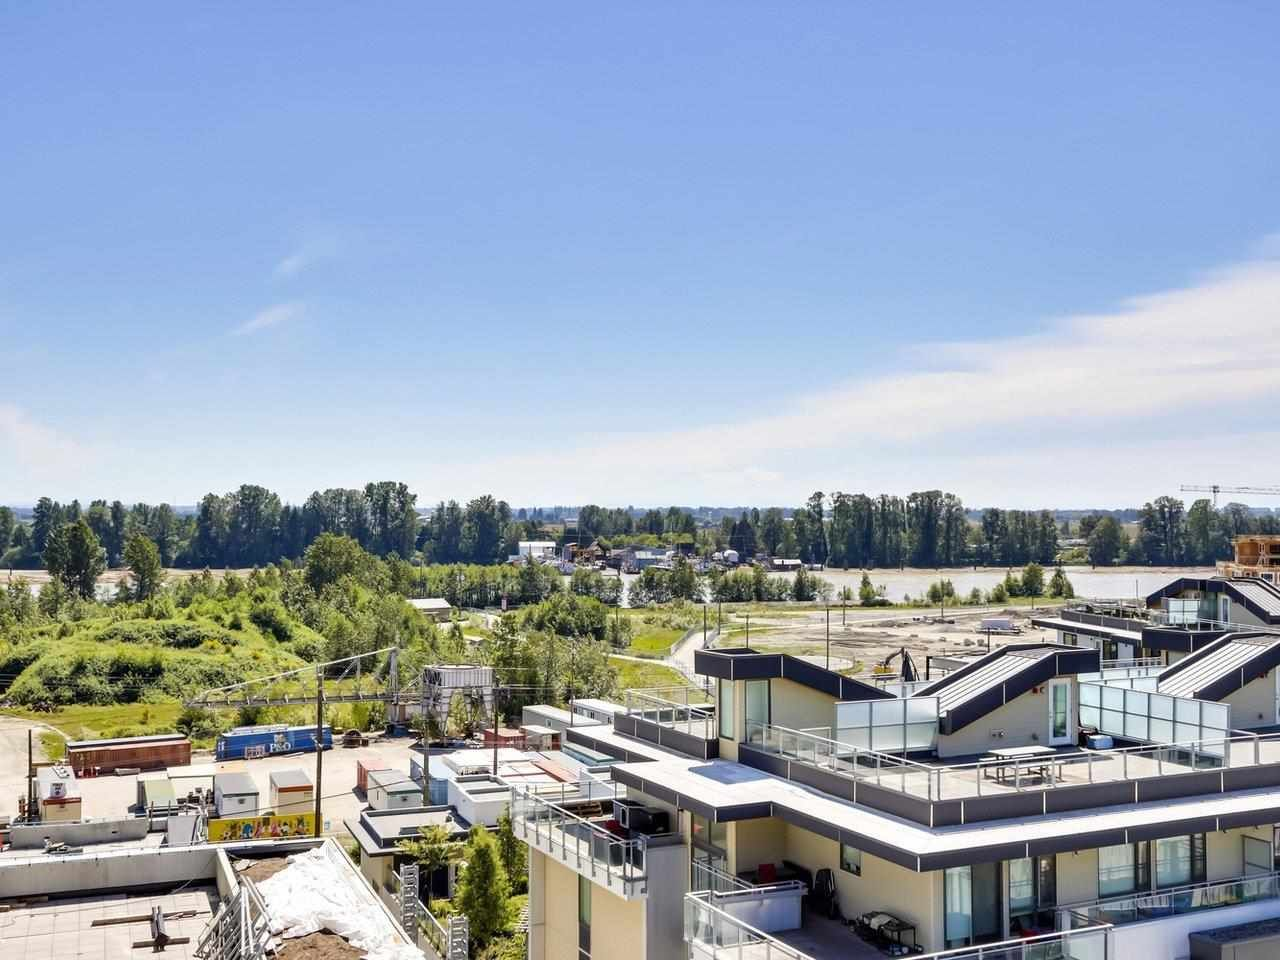 """Main Photo: 920 3557 SAWMILL Crescent in Vancouver: South Marine Condo for sale in """"RIVER DISTRICT - ONE TOWN CENTER"""" (Vancouver East)  : MLS®# R2580198"""